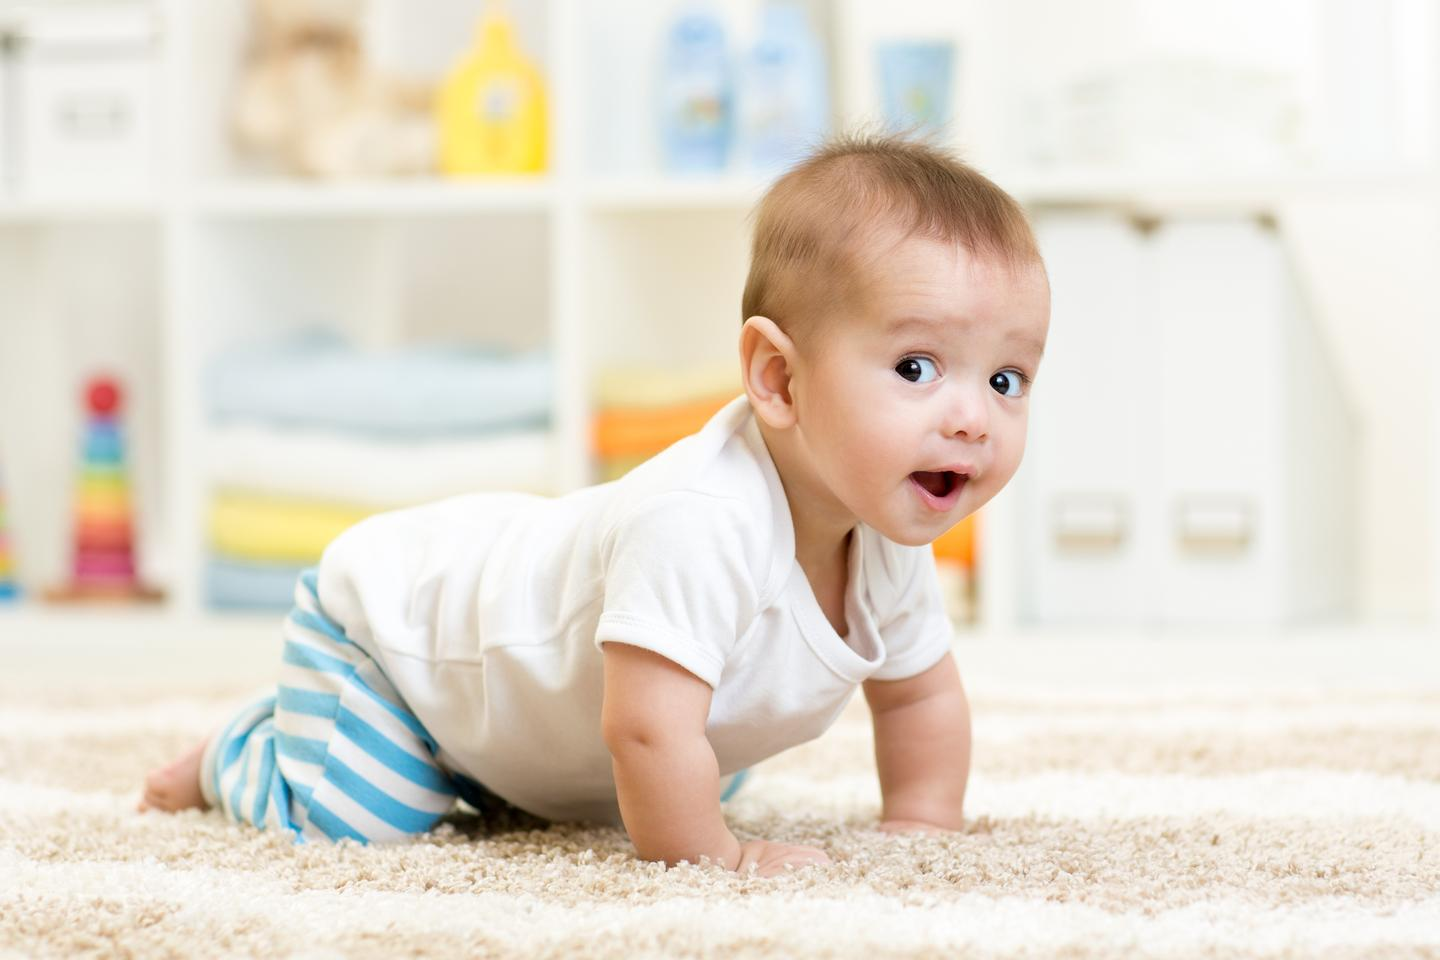 New research suggests fecal transplants from mother to baby can restore gut bacteria populations damaged by antibiotics